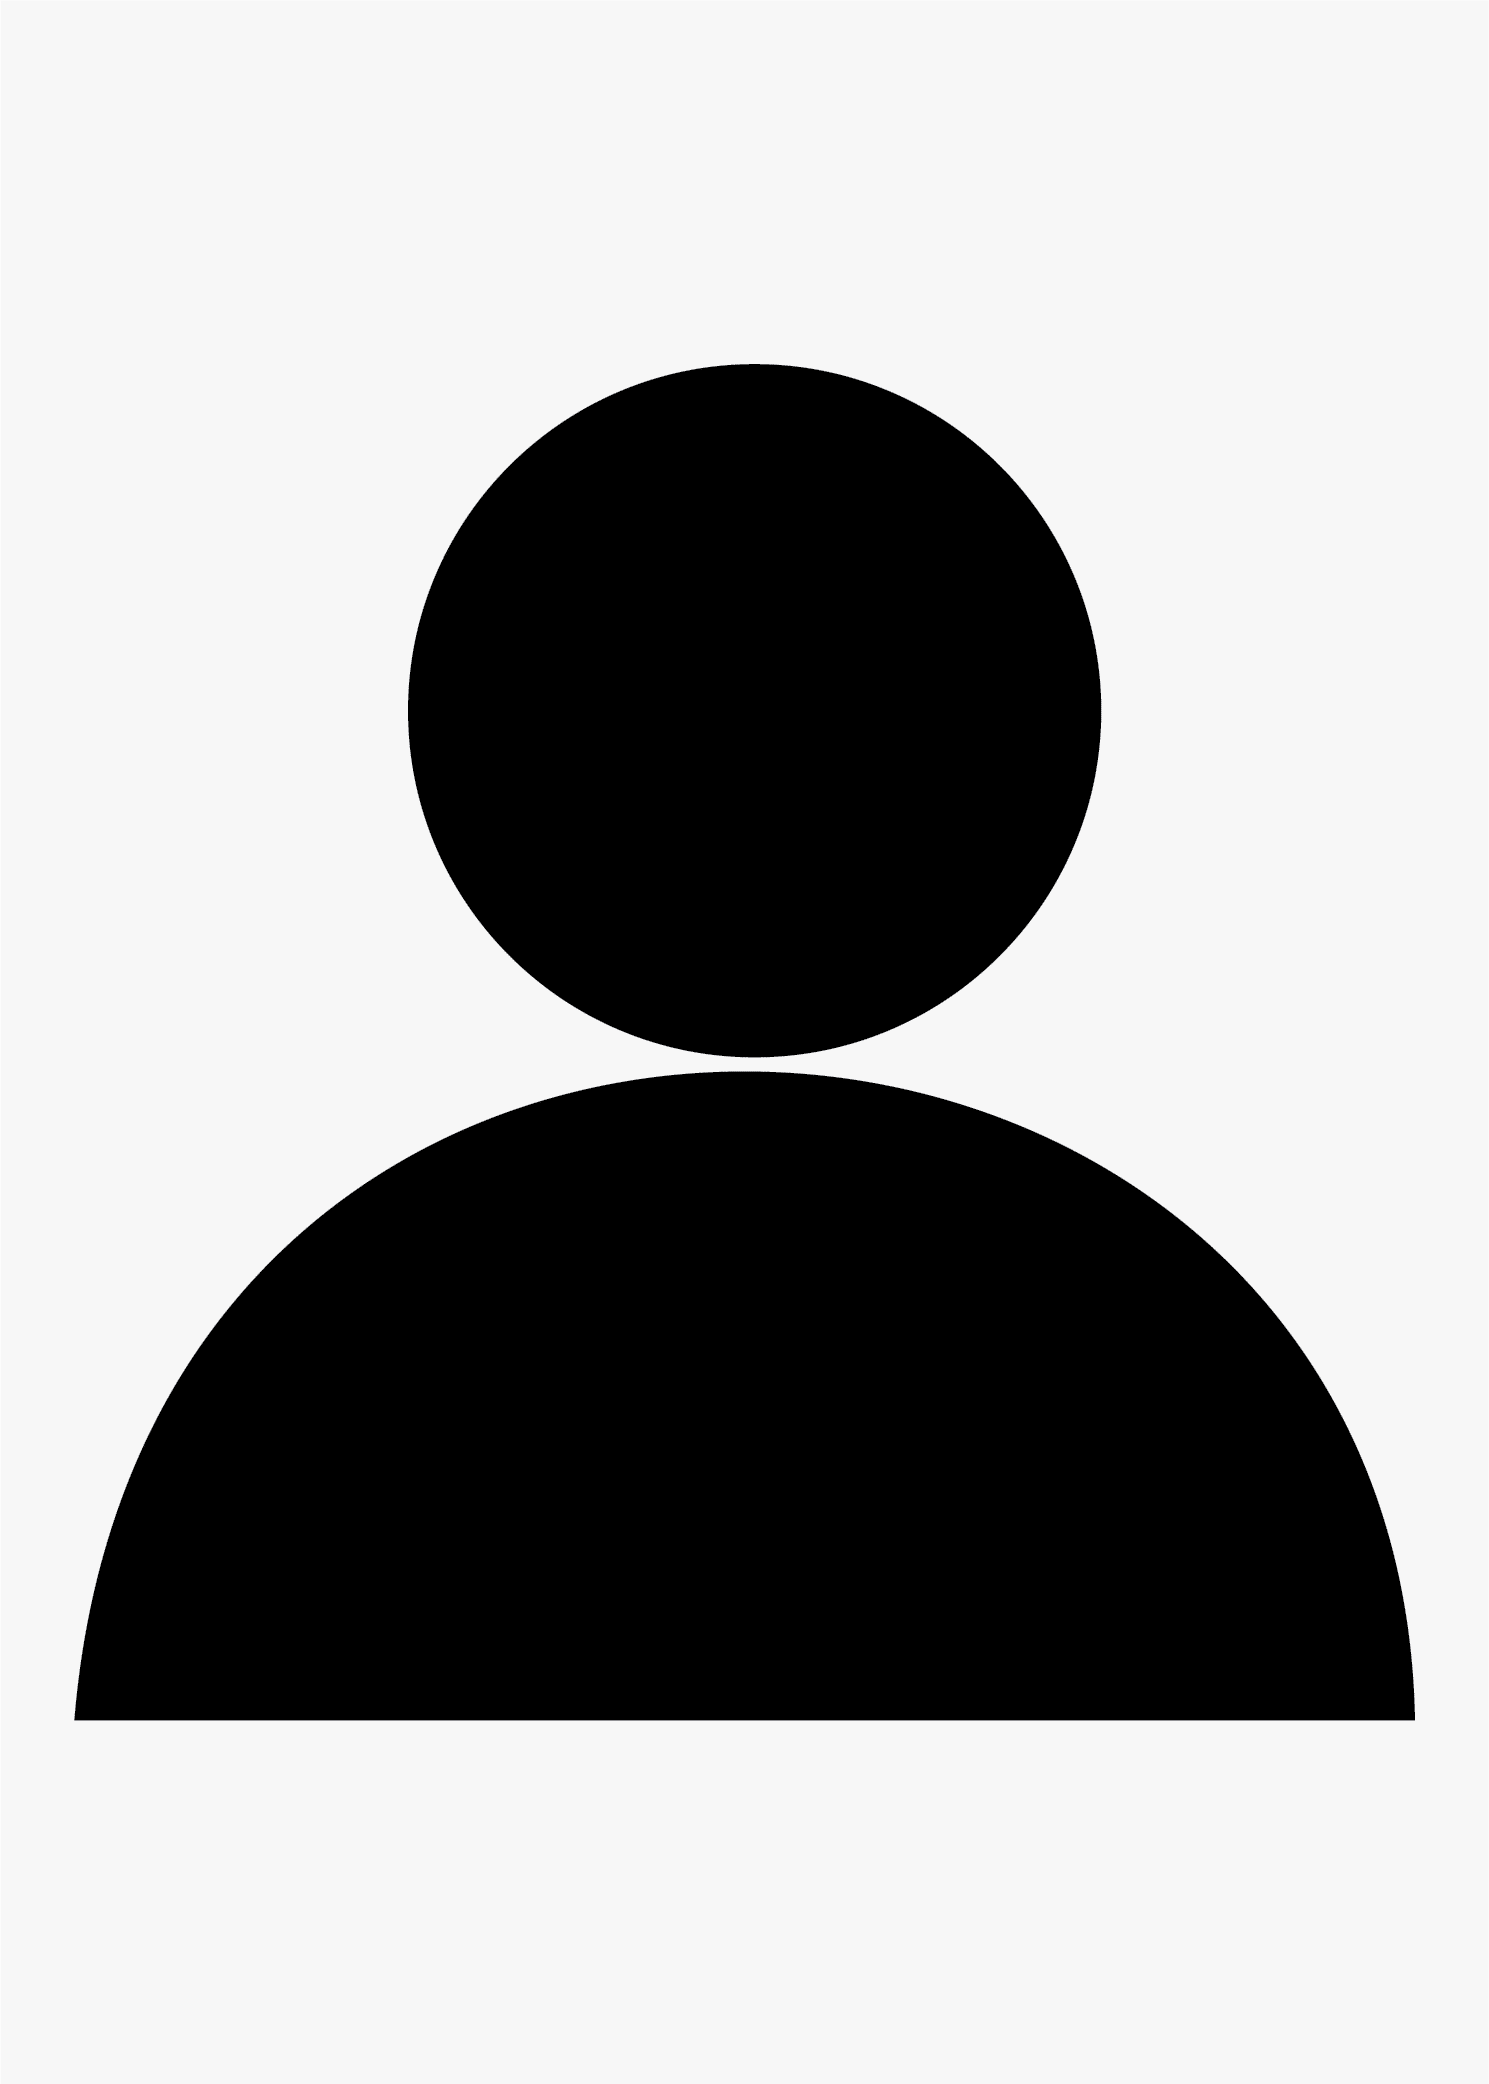 Placeholder Image for headshots that are not currently available